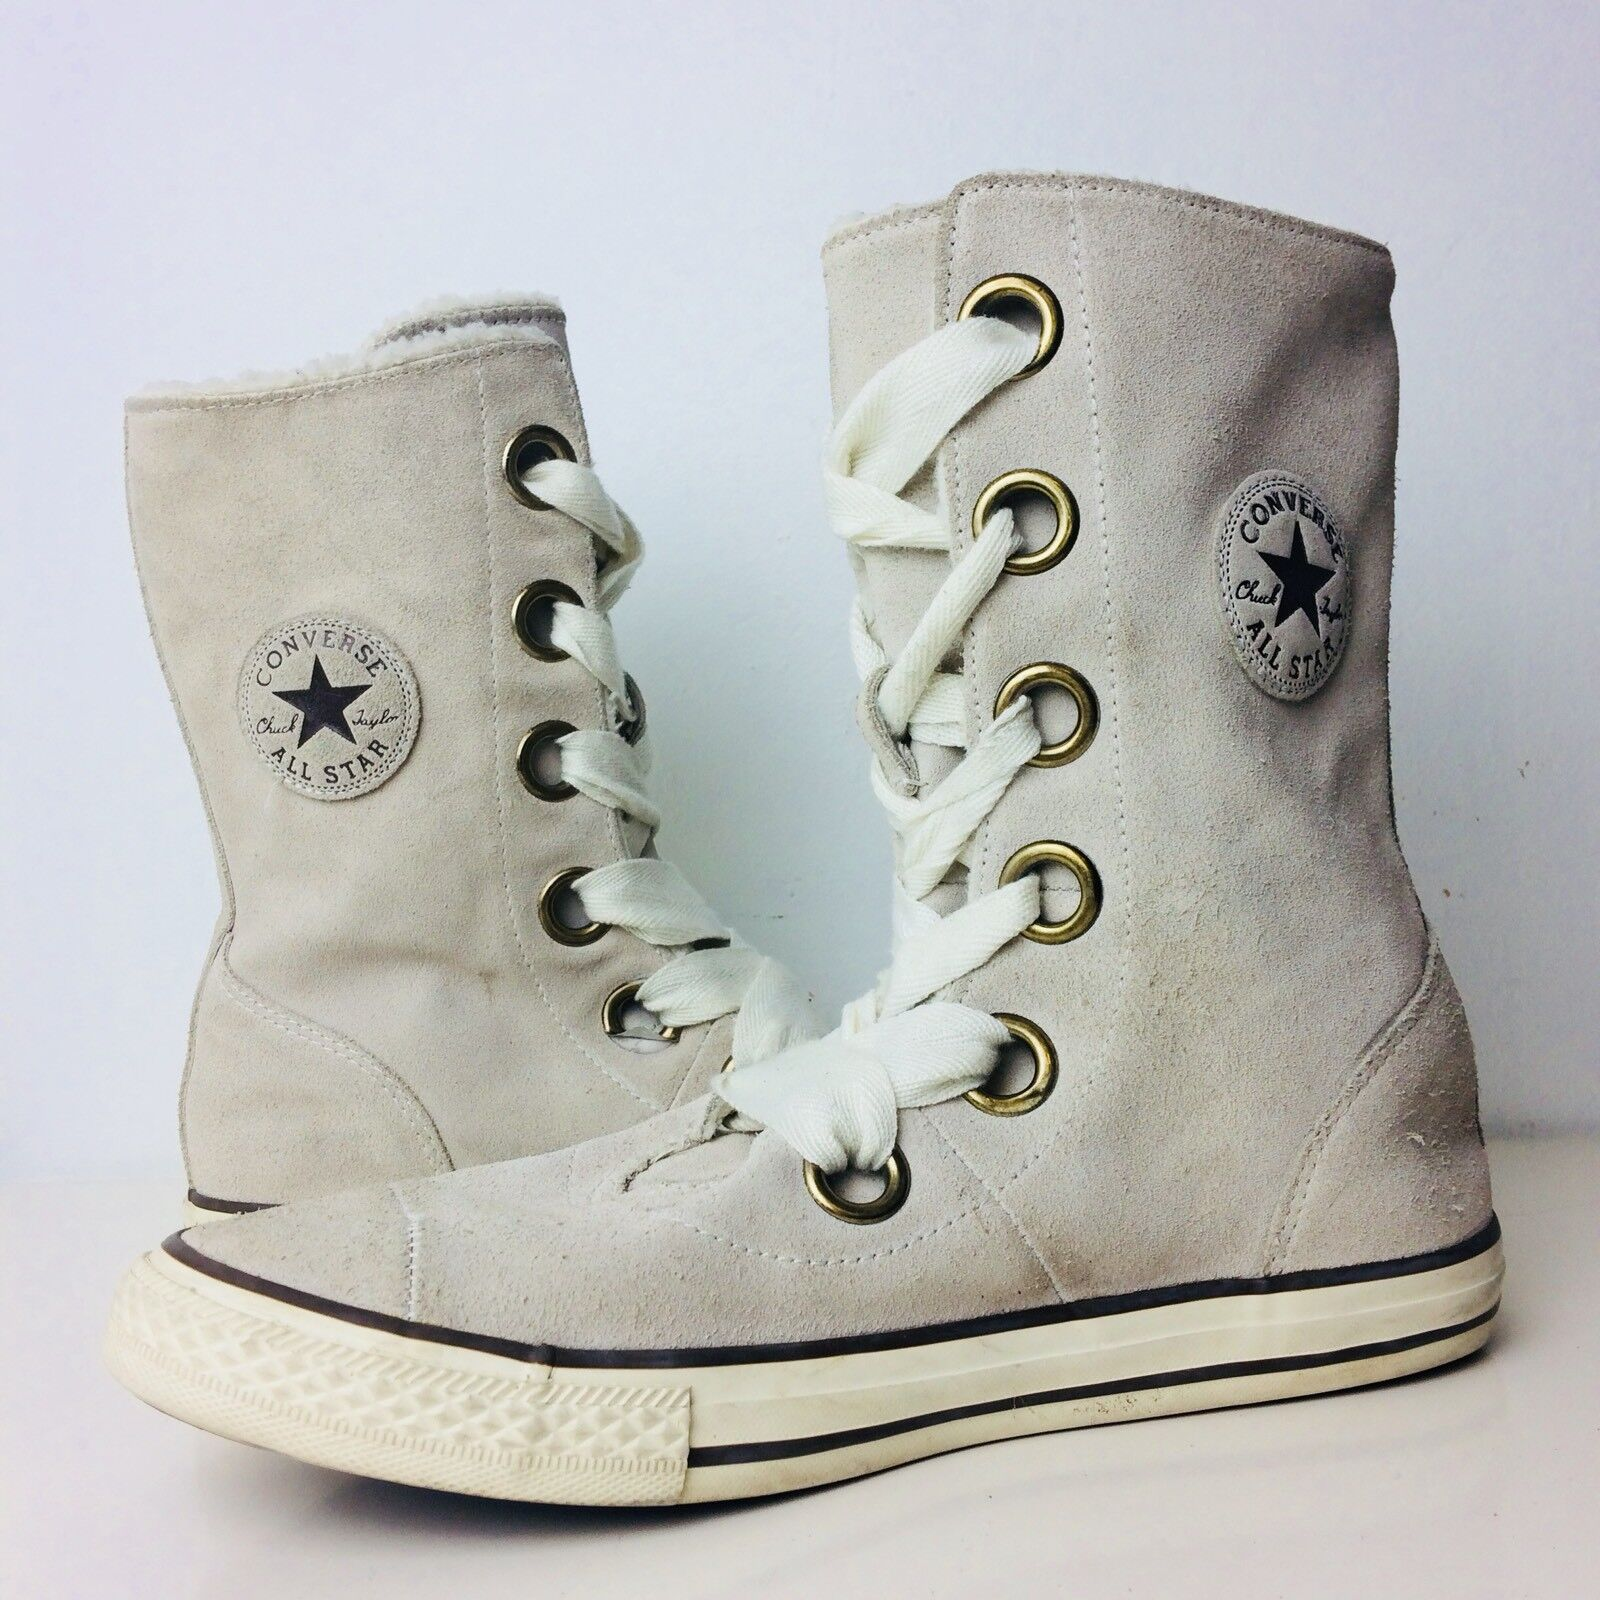 Converse Chuck Taylor All Star Women's Beverly Boot Size 10